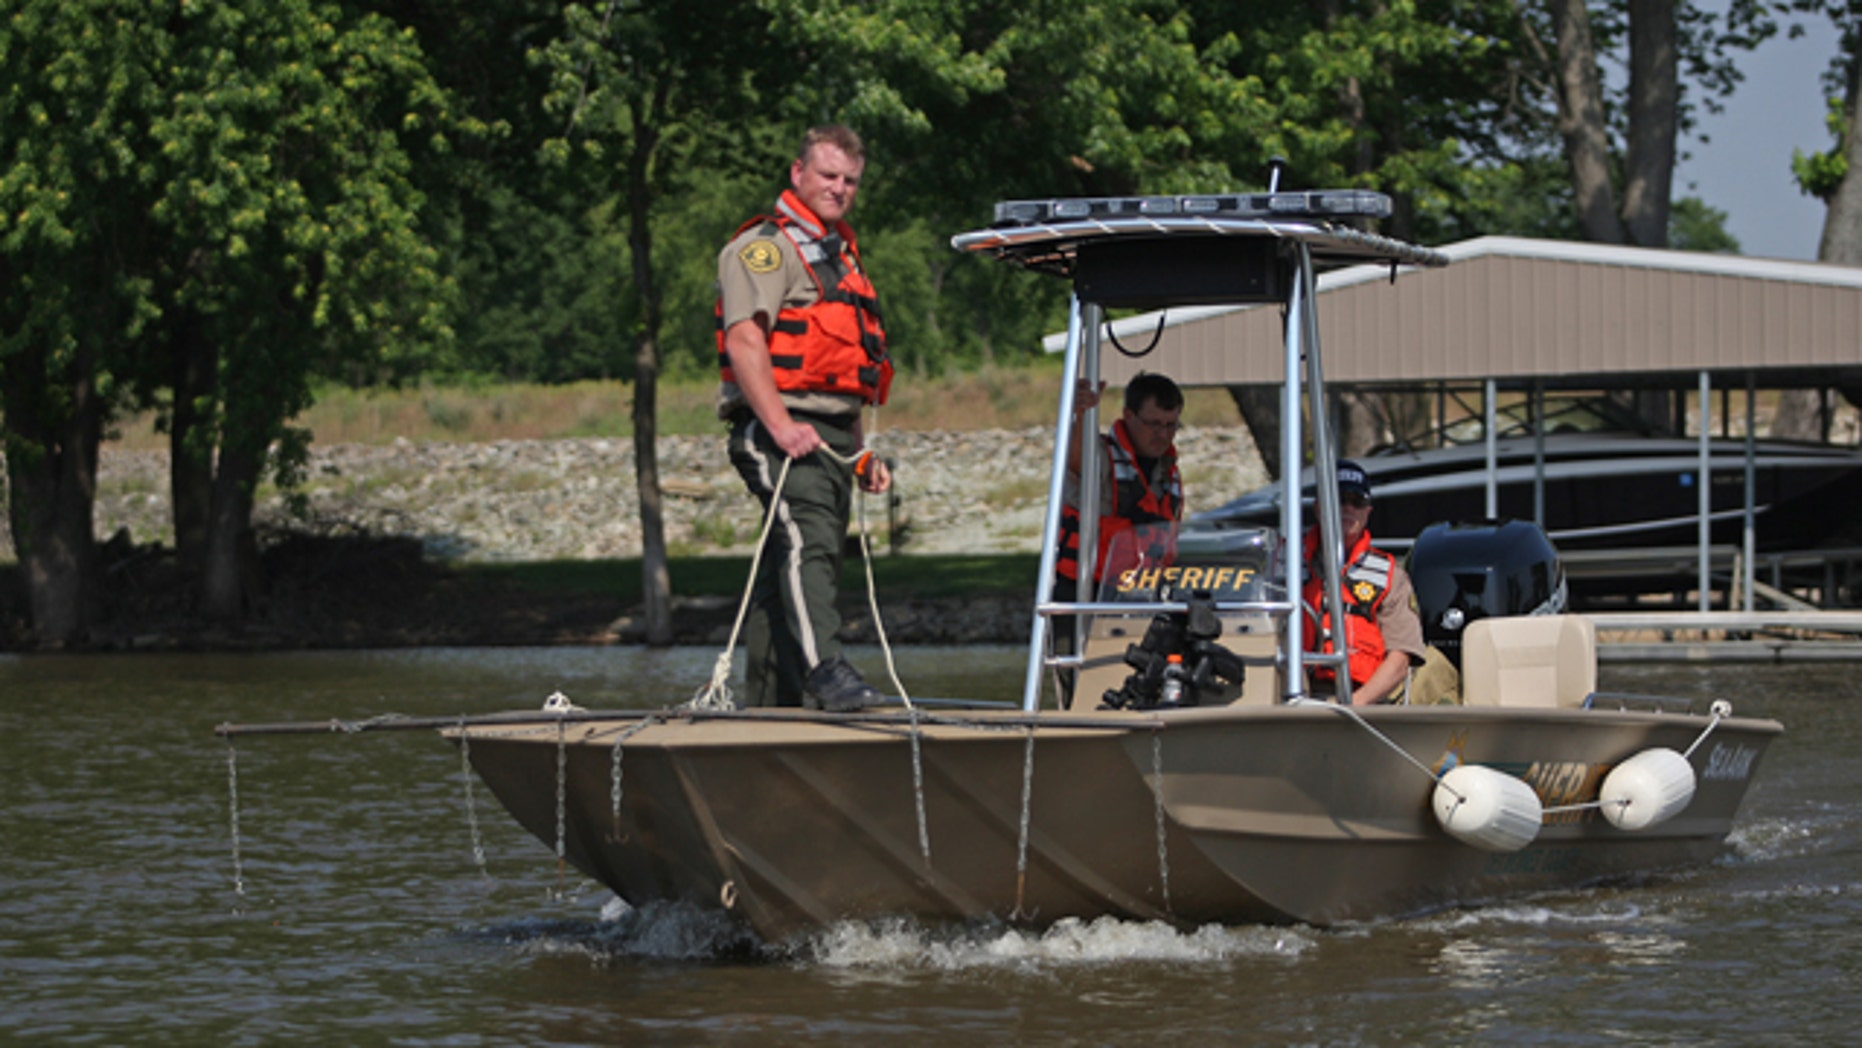 May 19, 2012: Des Moines County officer Kevin Glendening, foreground, drags the Mississippi River as officer Brad Siegfried, center, and Sheriff Mike Johnstone use sonar to locate four missing people near O'Connel Slough near Burlington, Iowa.